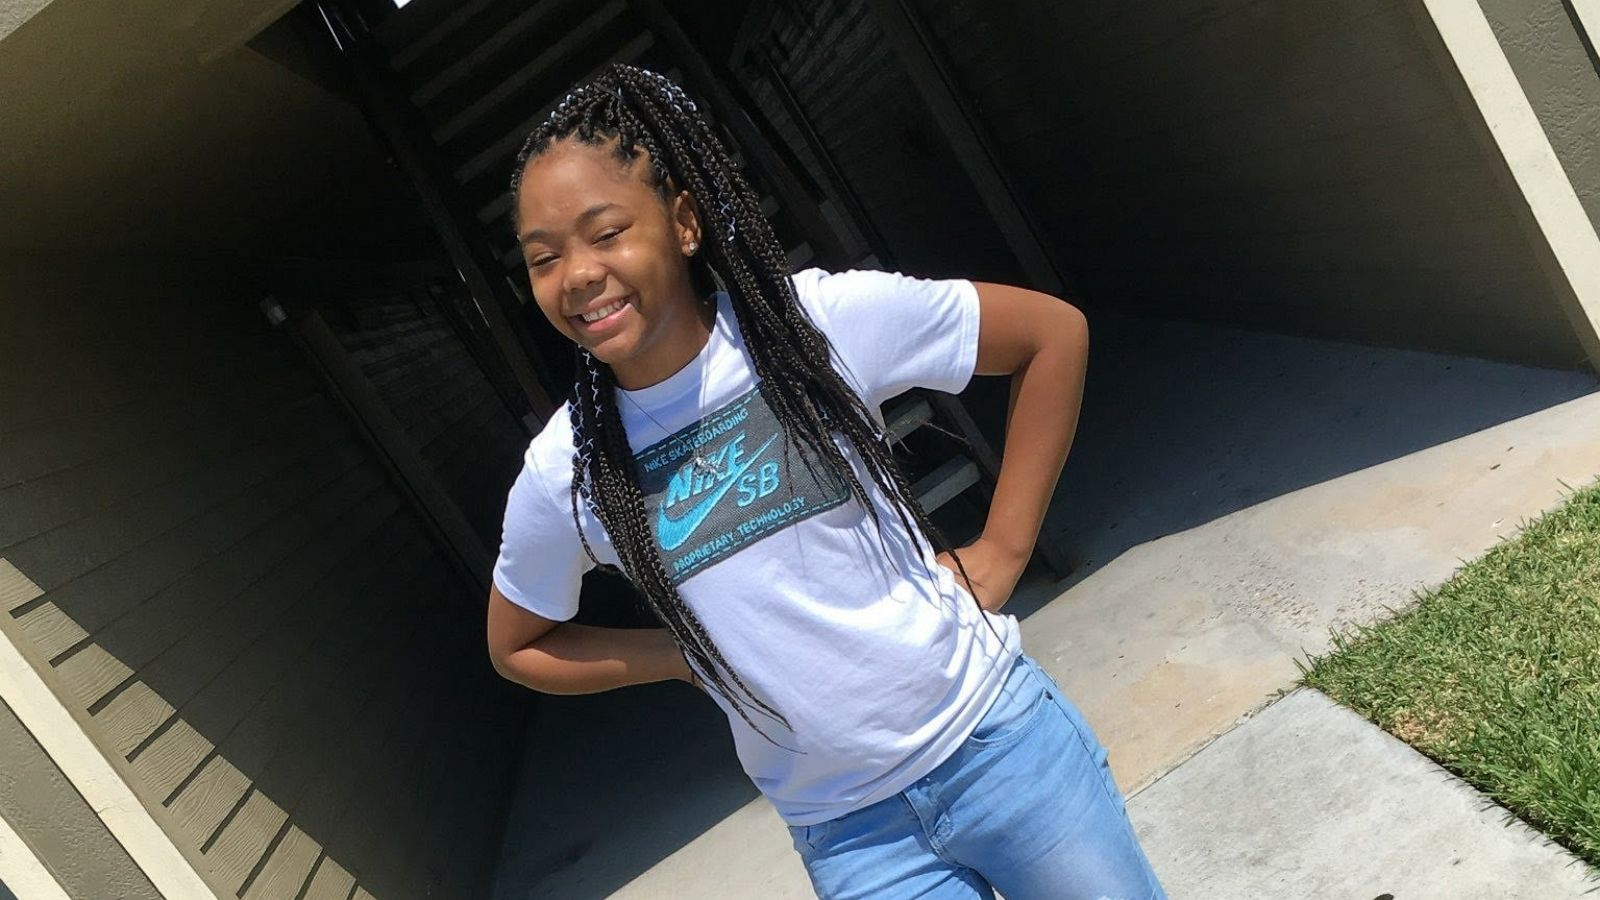 13 Year Old Houston Girl Dies After Being Jumped By Classmates While Walking Home From School Abc News